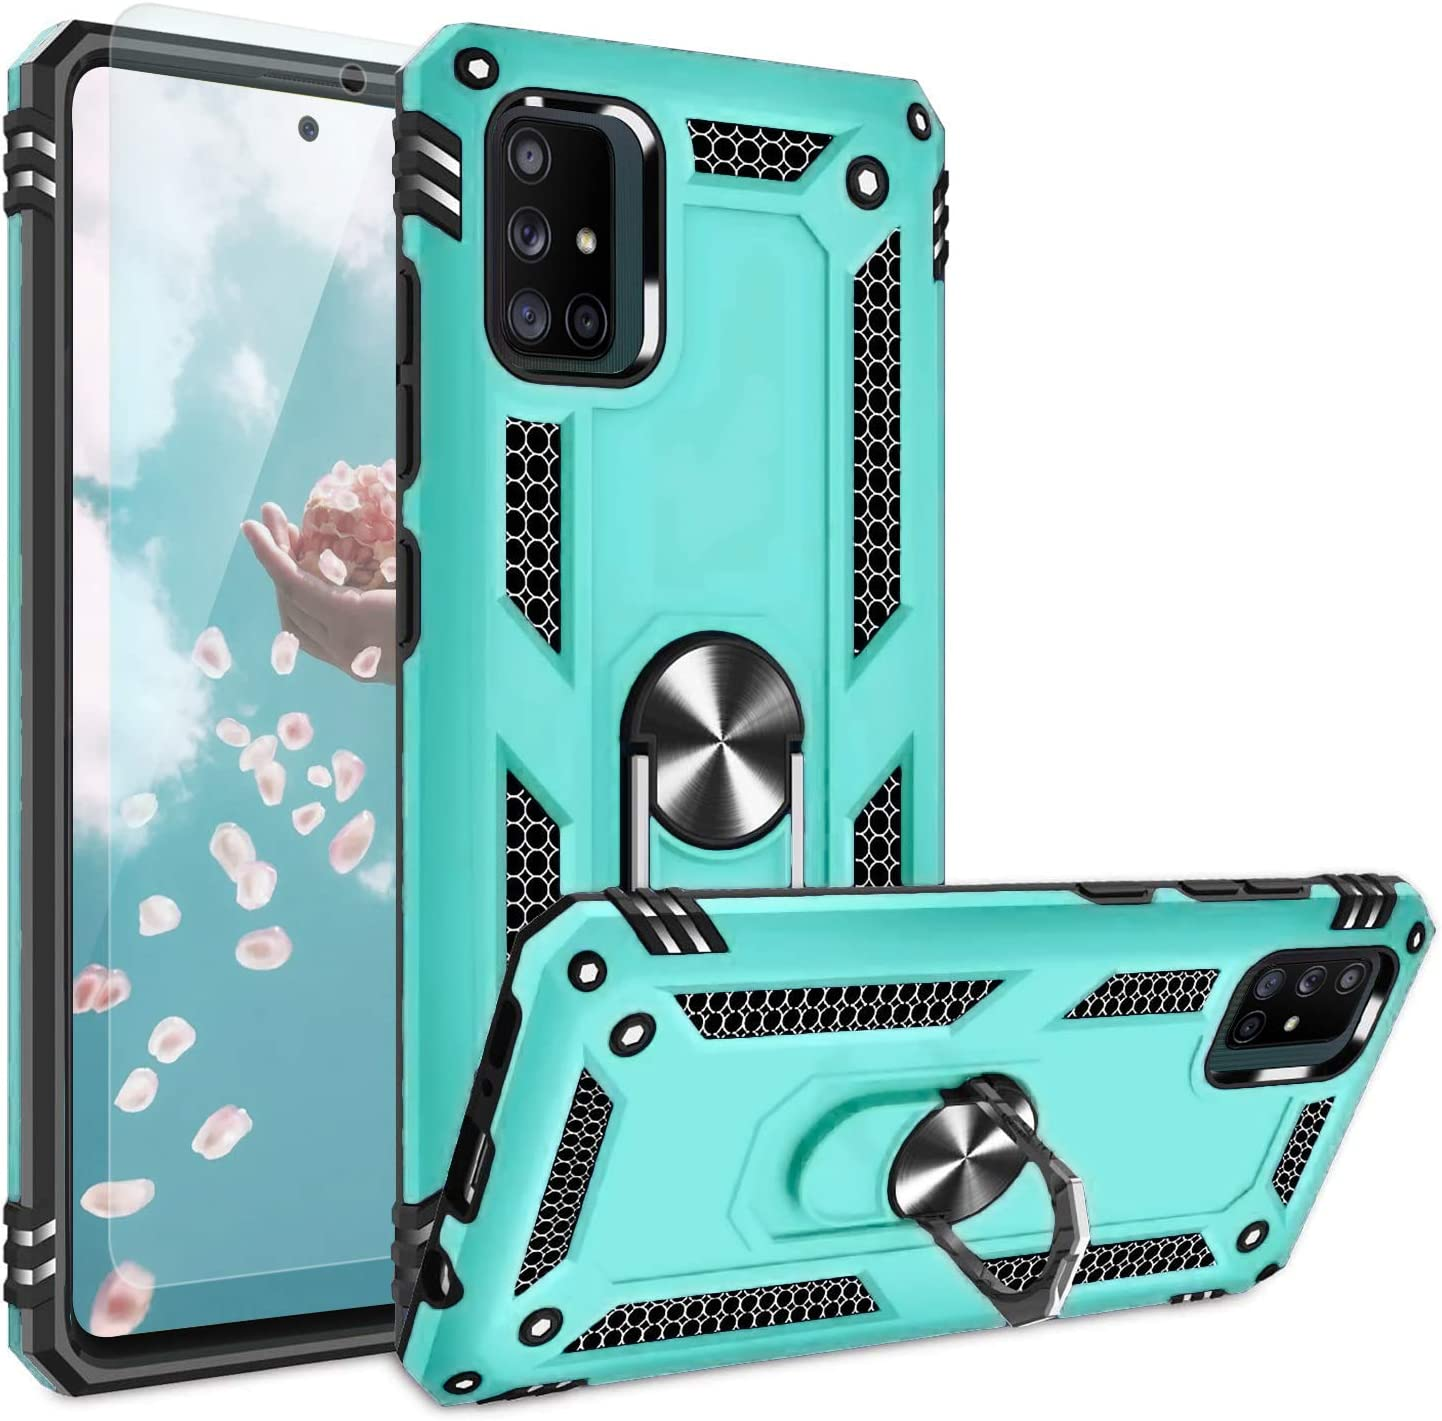 Amazon Com Tjs Phone Case Compatible With Samsung Galaxy A71 5g A91 M80s Not Fit Galaxy A71 4g Verizon Galaxy A71 5g Uw With Tempered Glass Screen Protector Metal Ring Magnetic Support Armor Cover Teal Electronics